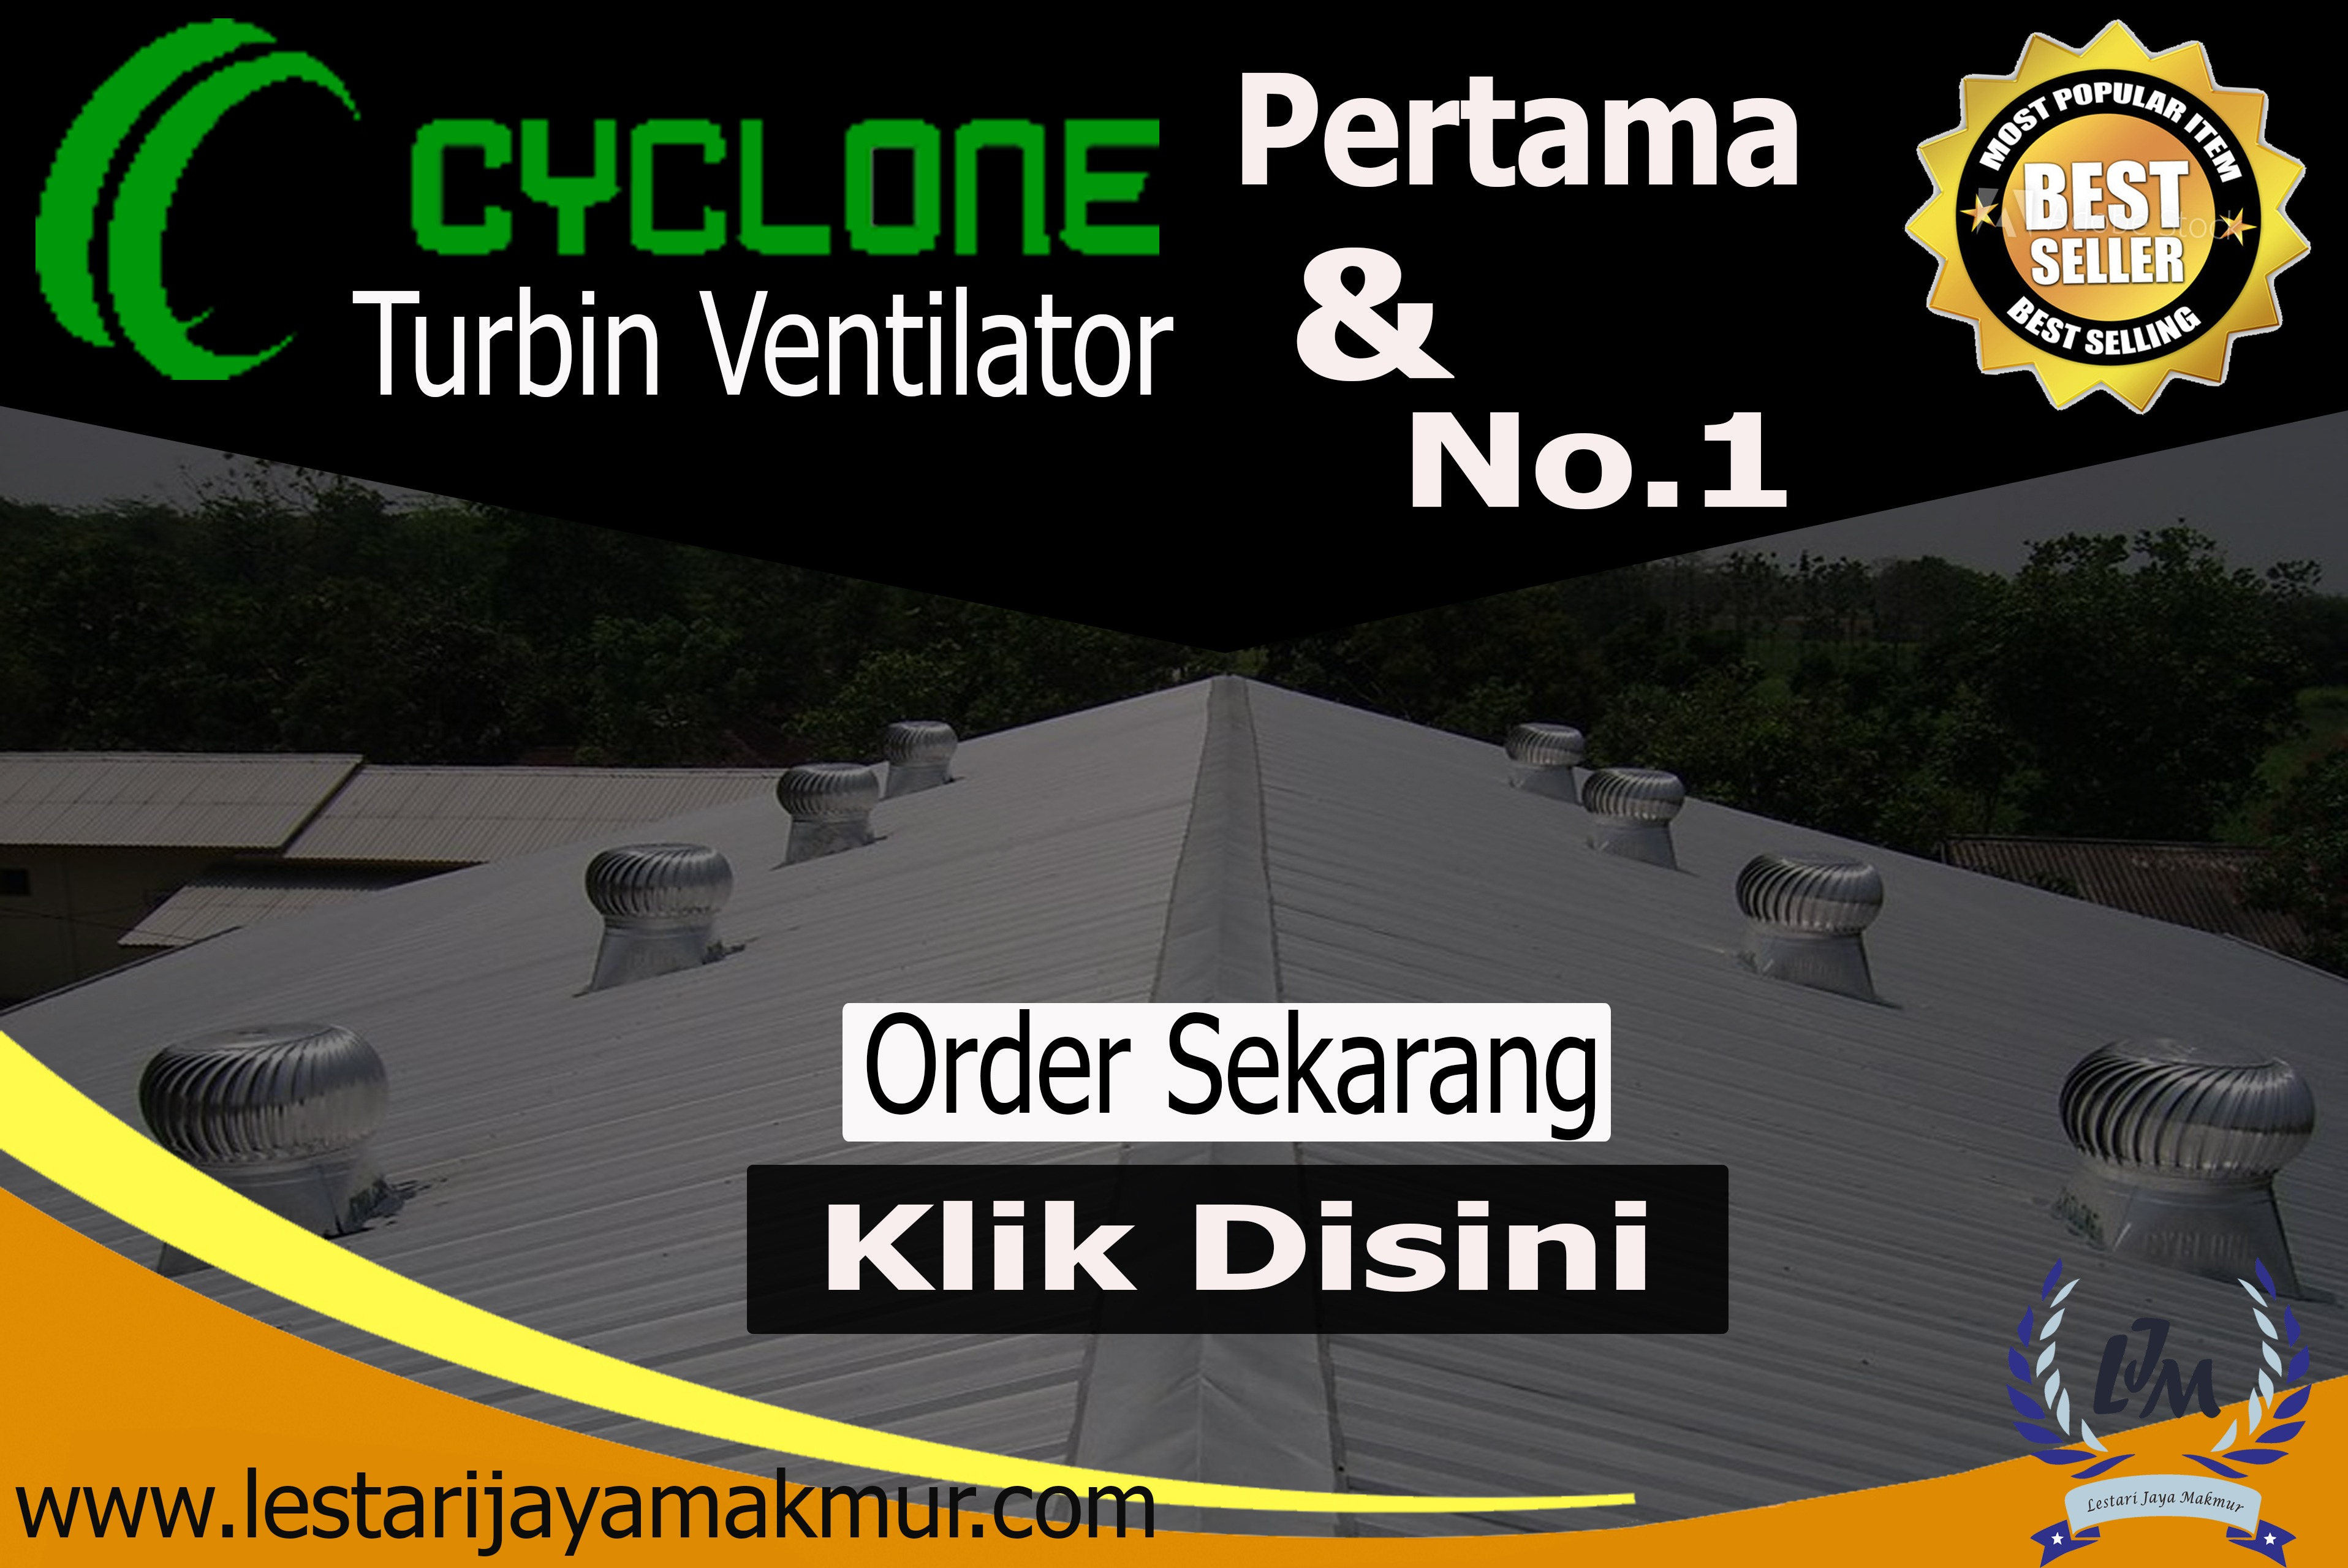 jual turbin ventilator cyclone